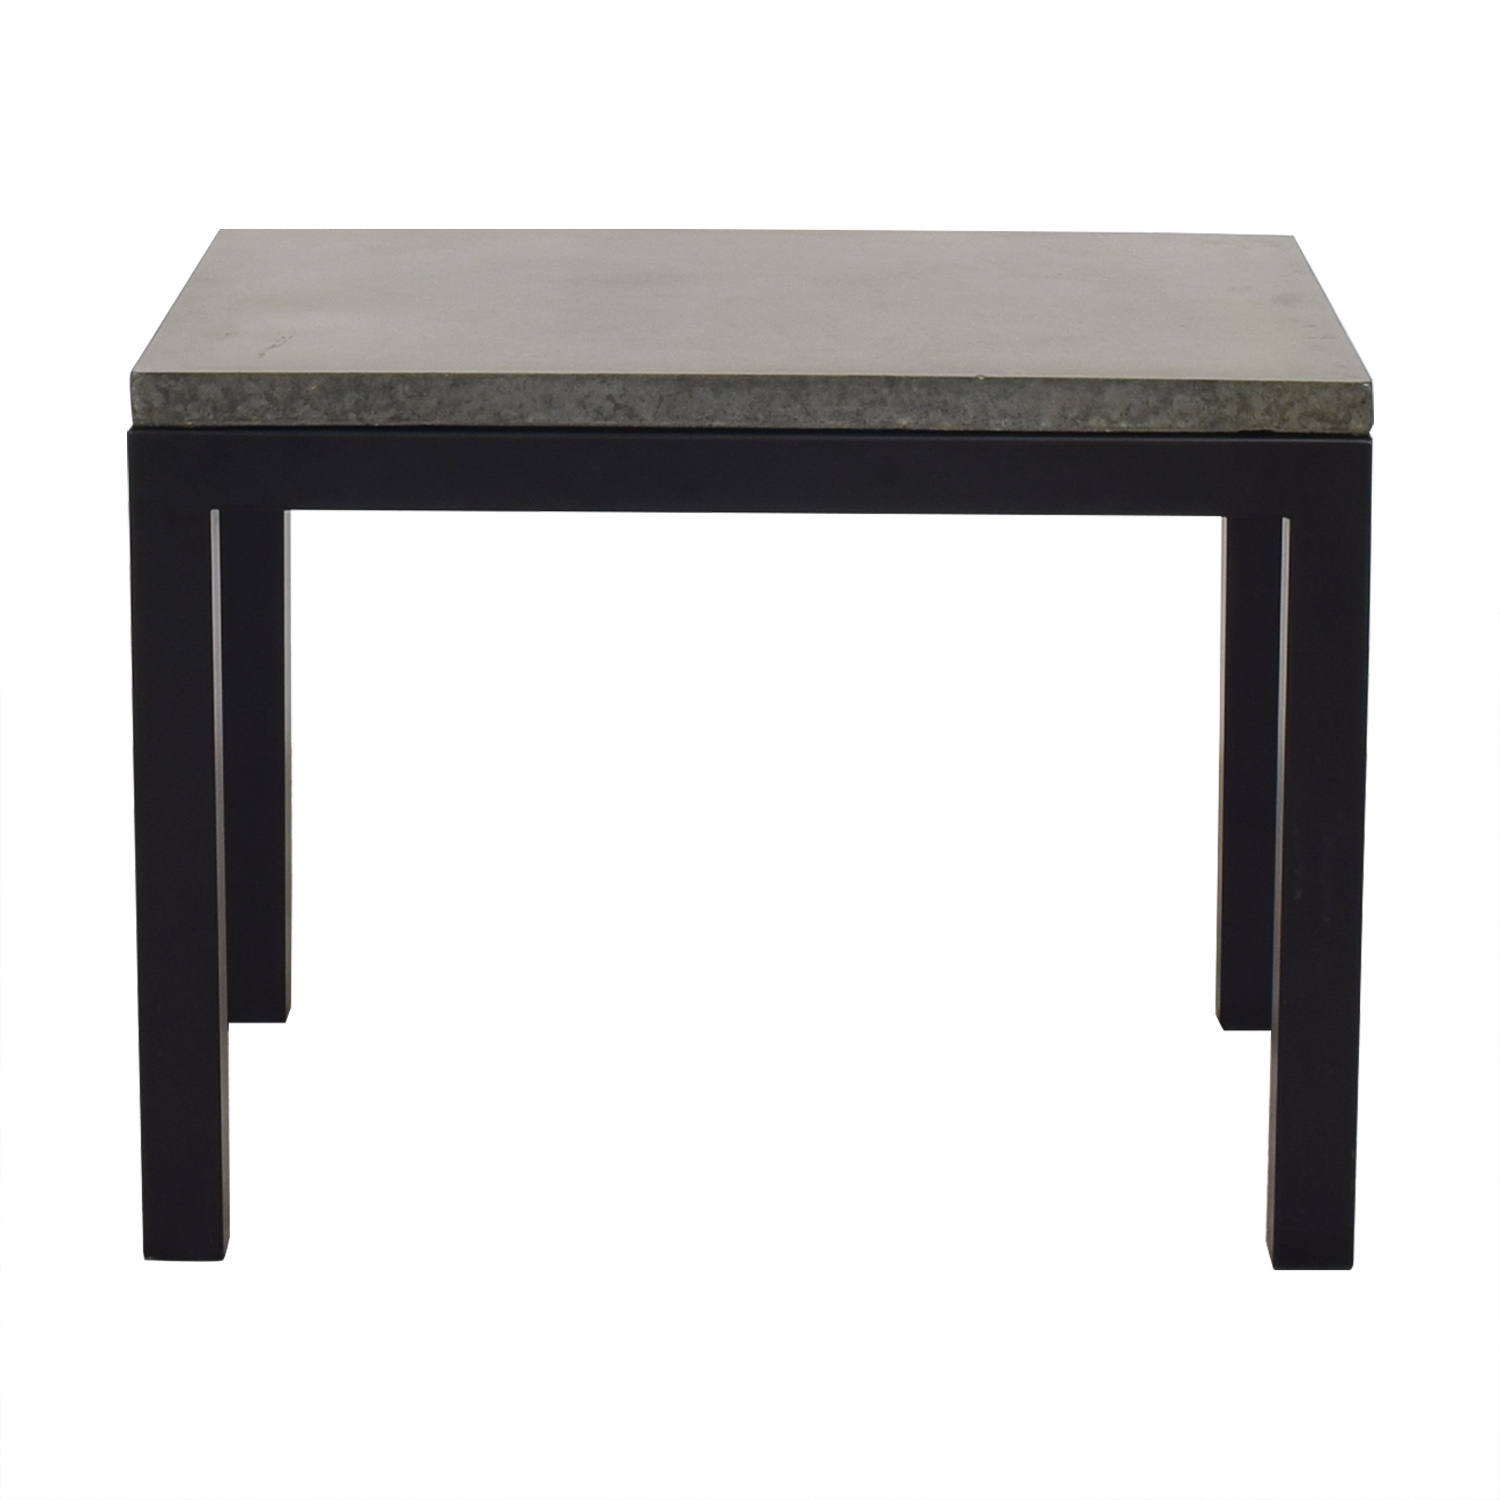 Room & Board Room & Board Parsons Concrete End Table nj